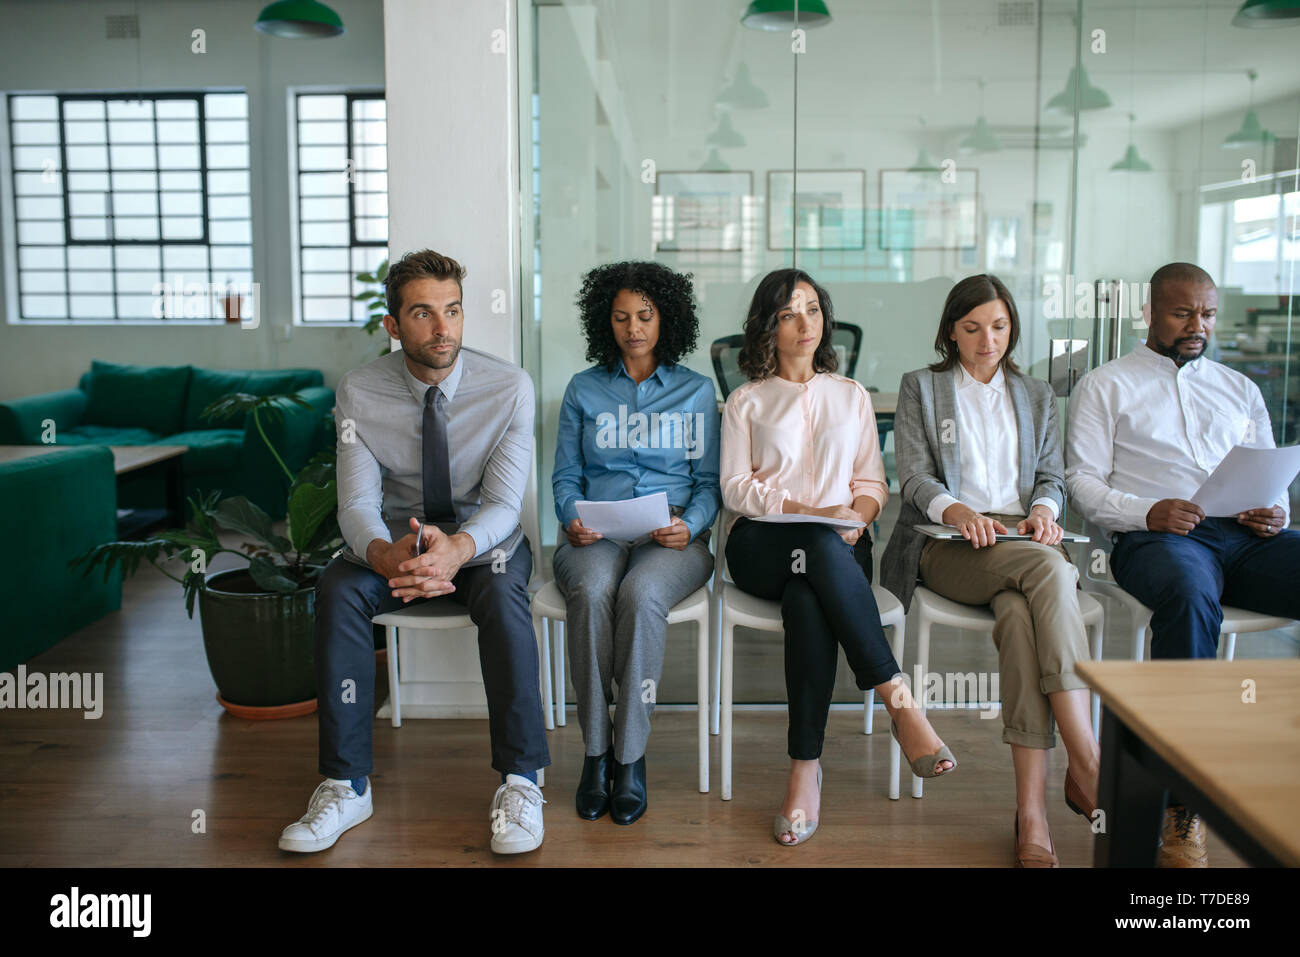 People waiting for their job interviews in an office - Stock Image